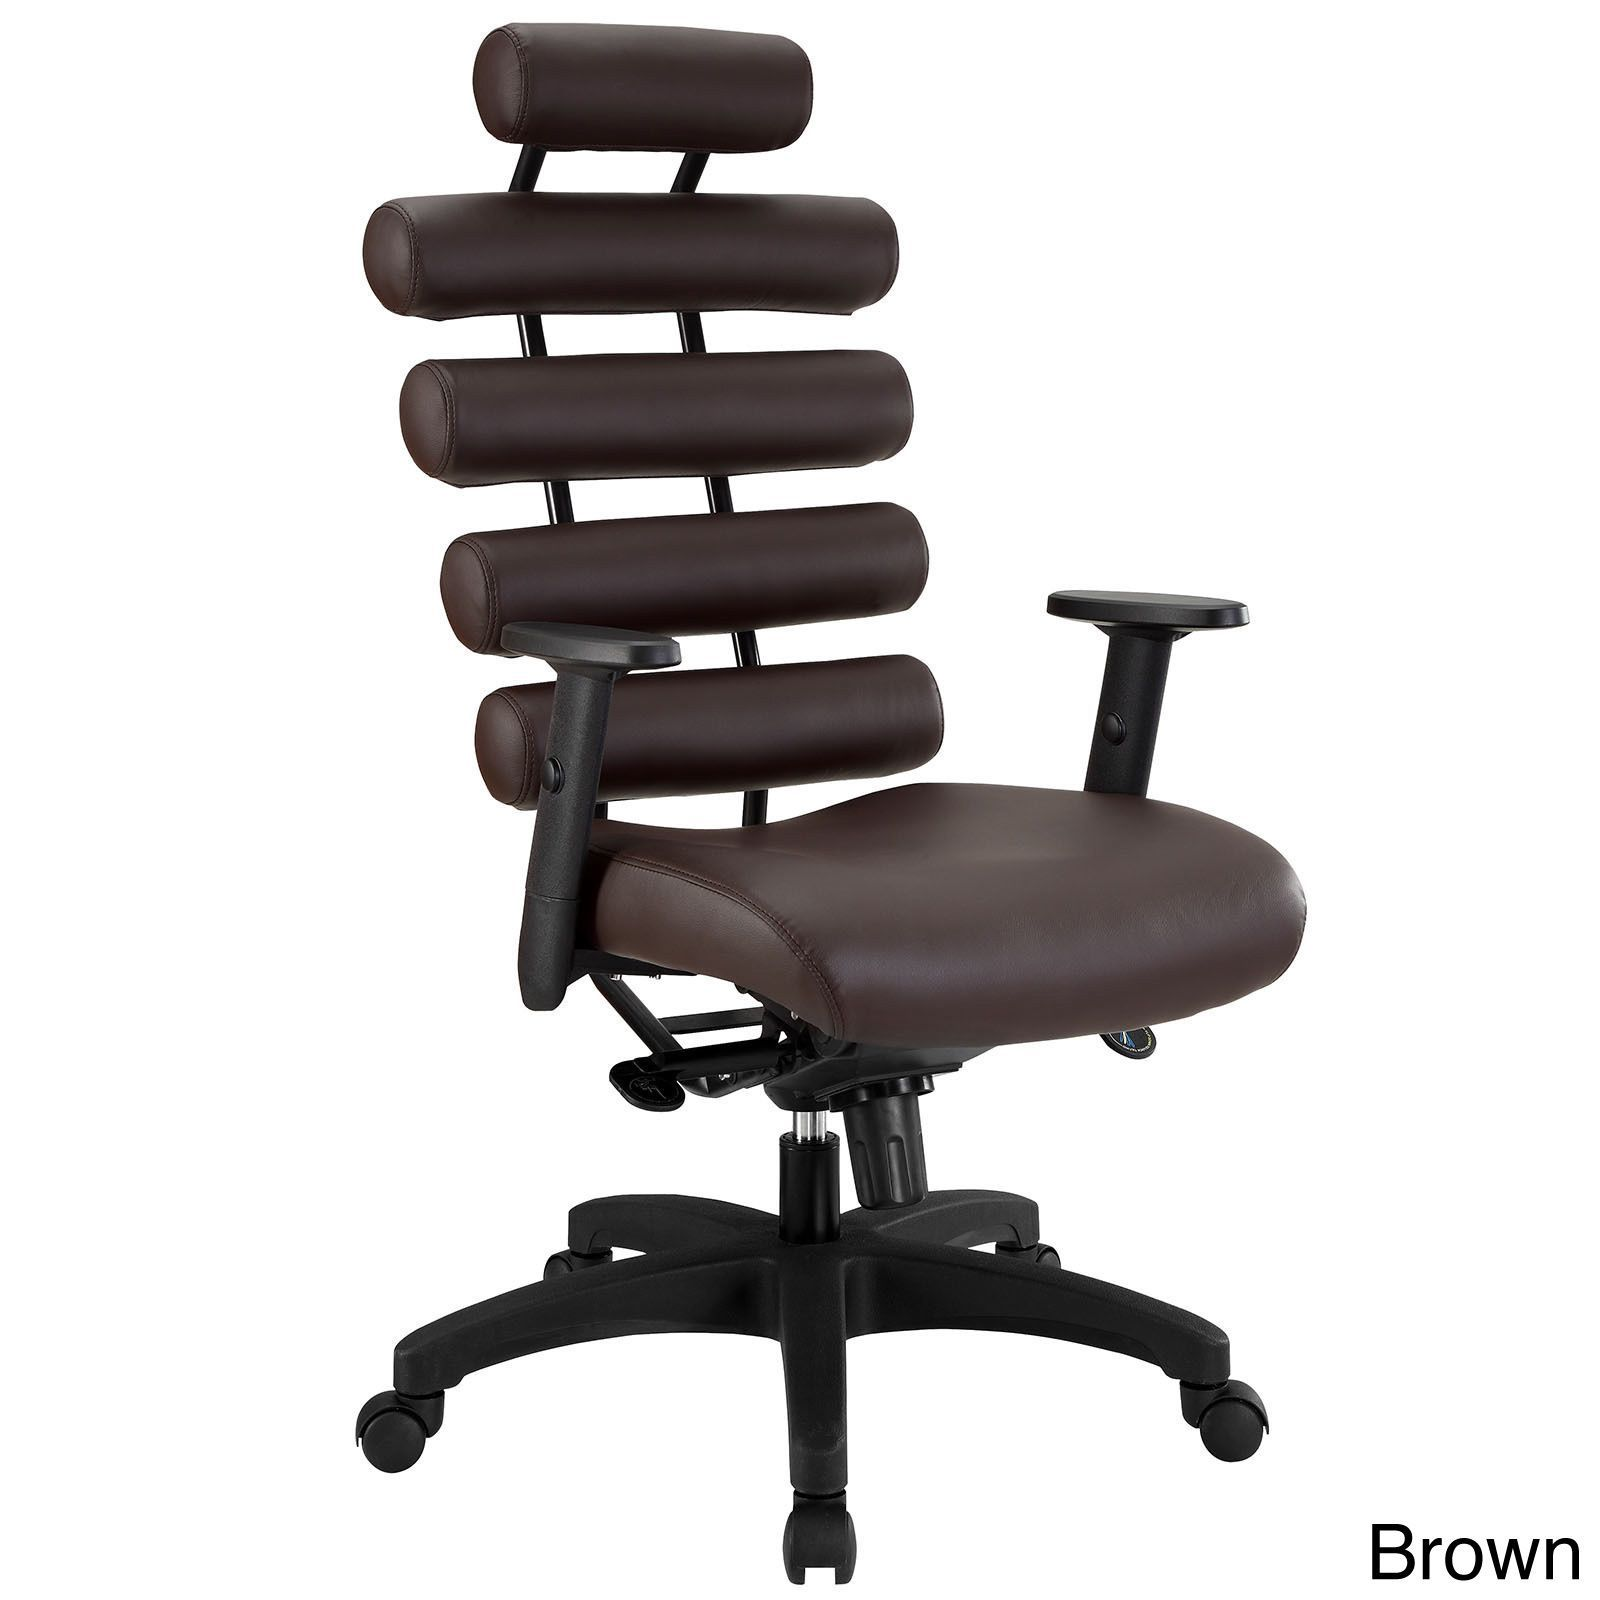 Modway black pillow office chair black black pillows pillows